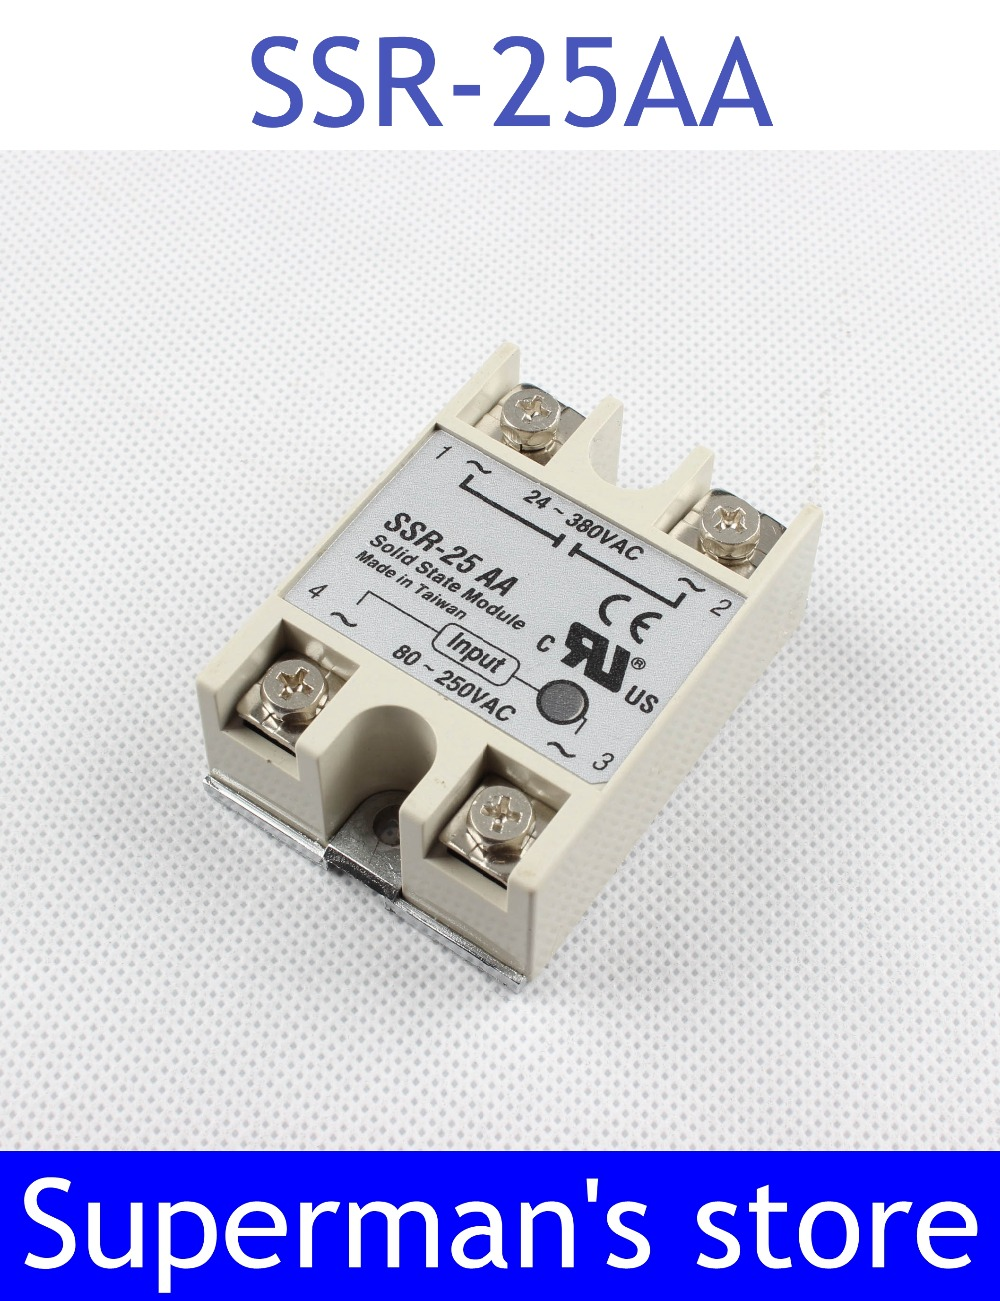 solid state relay SSR-25AA 25A  actually 80-250V AC TO 24-380V AC SSR 25AA relay High qualitysolid state relay SSR-25AA 25A  actually 80-250V AC TO 24-380V AC SSR 25AA relay High quality